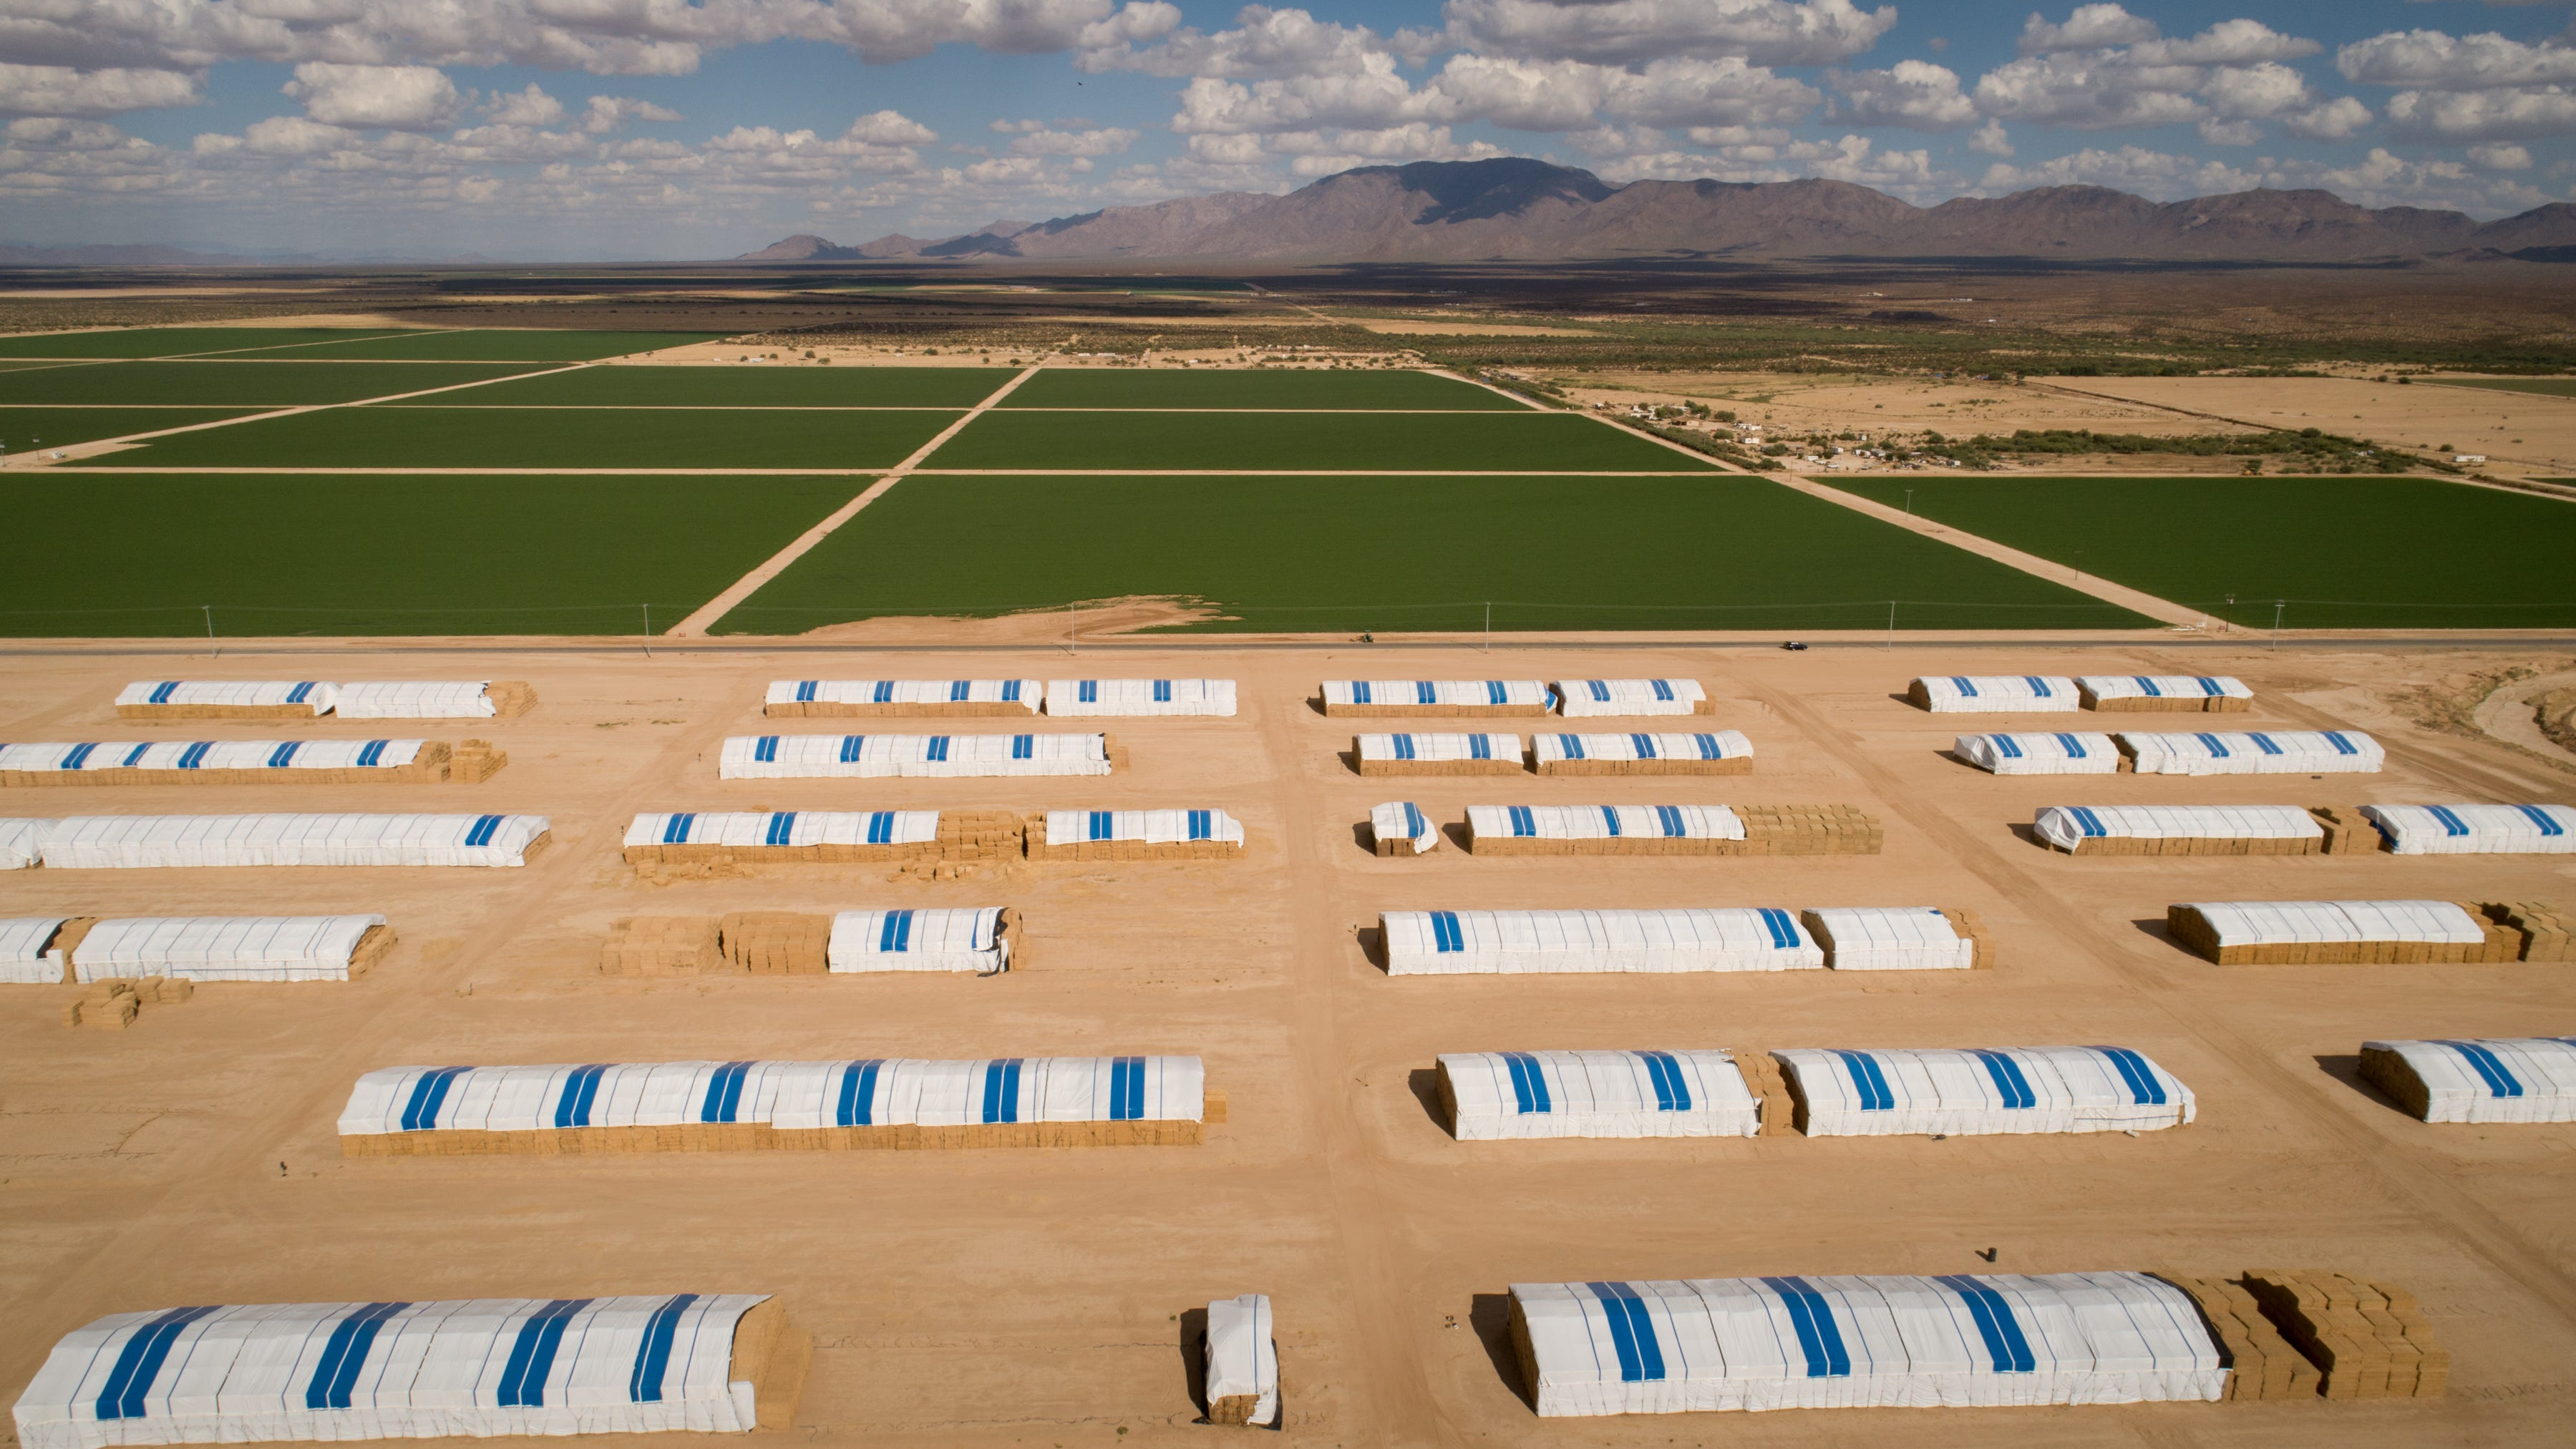 Megafarms and deeper wells are draining the water beneath rural Arizona – quietly, irreversibly